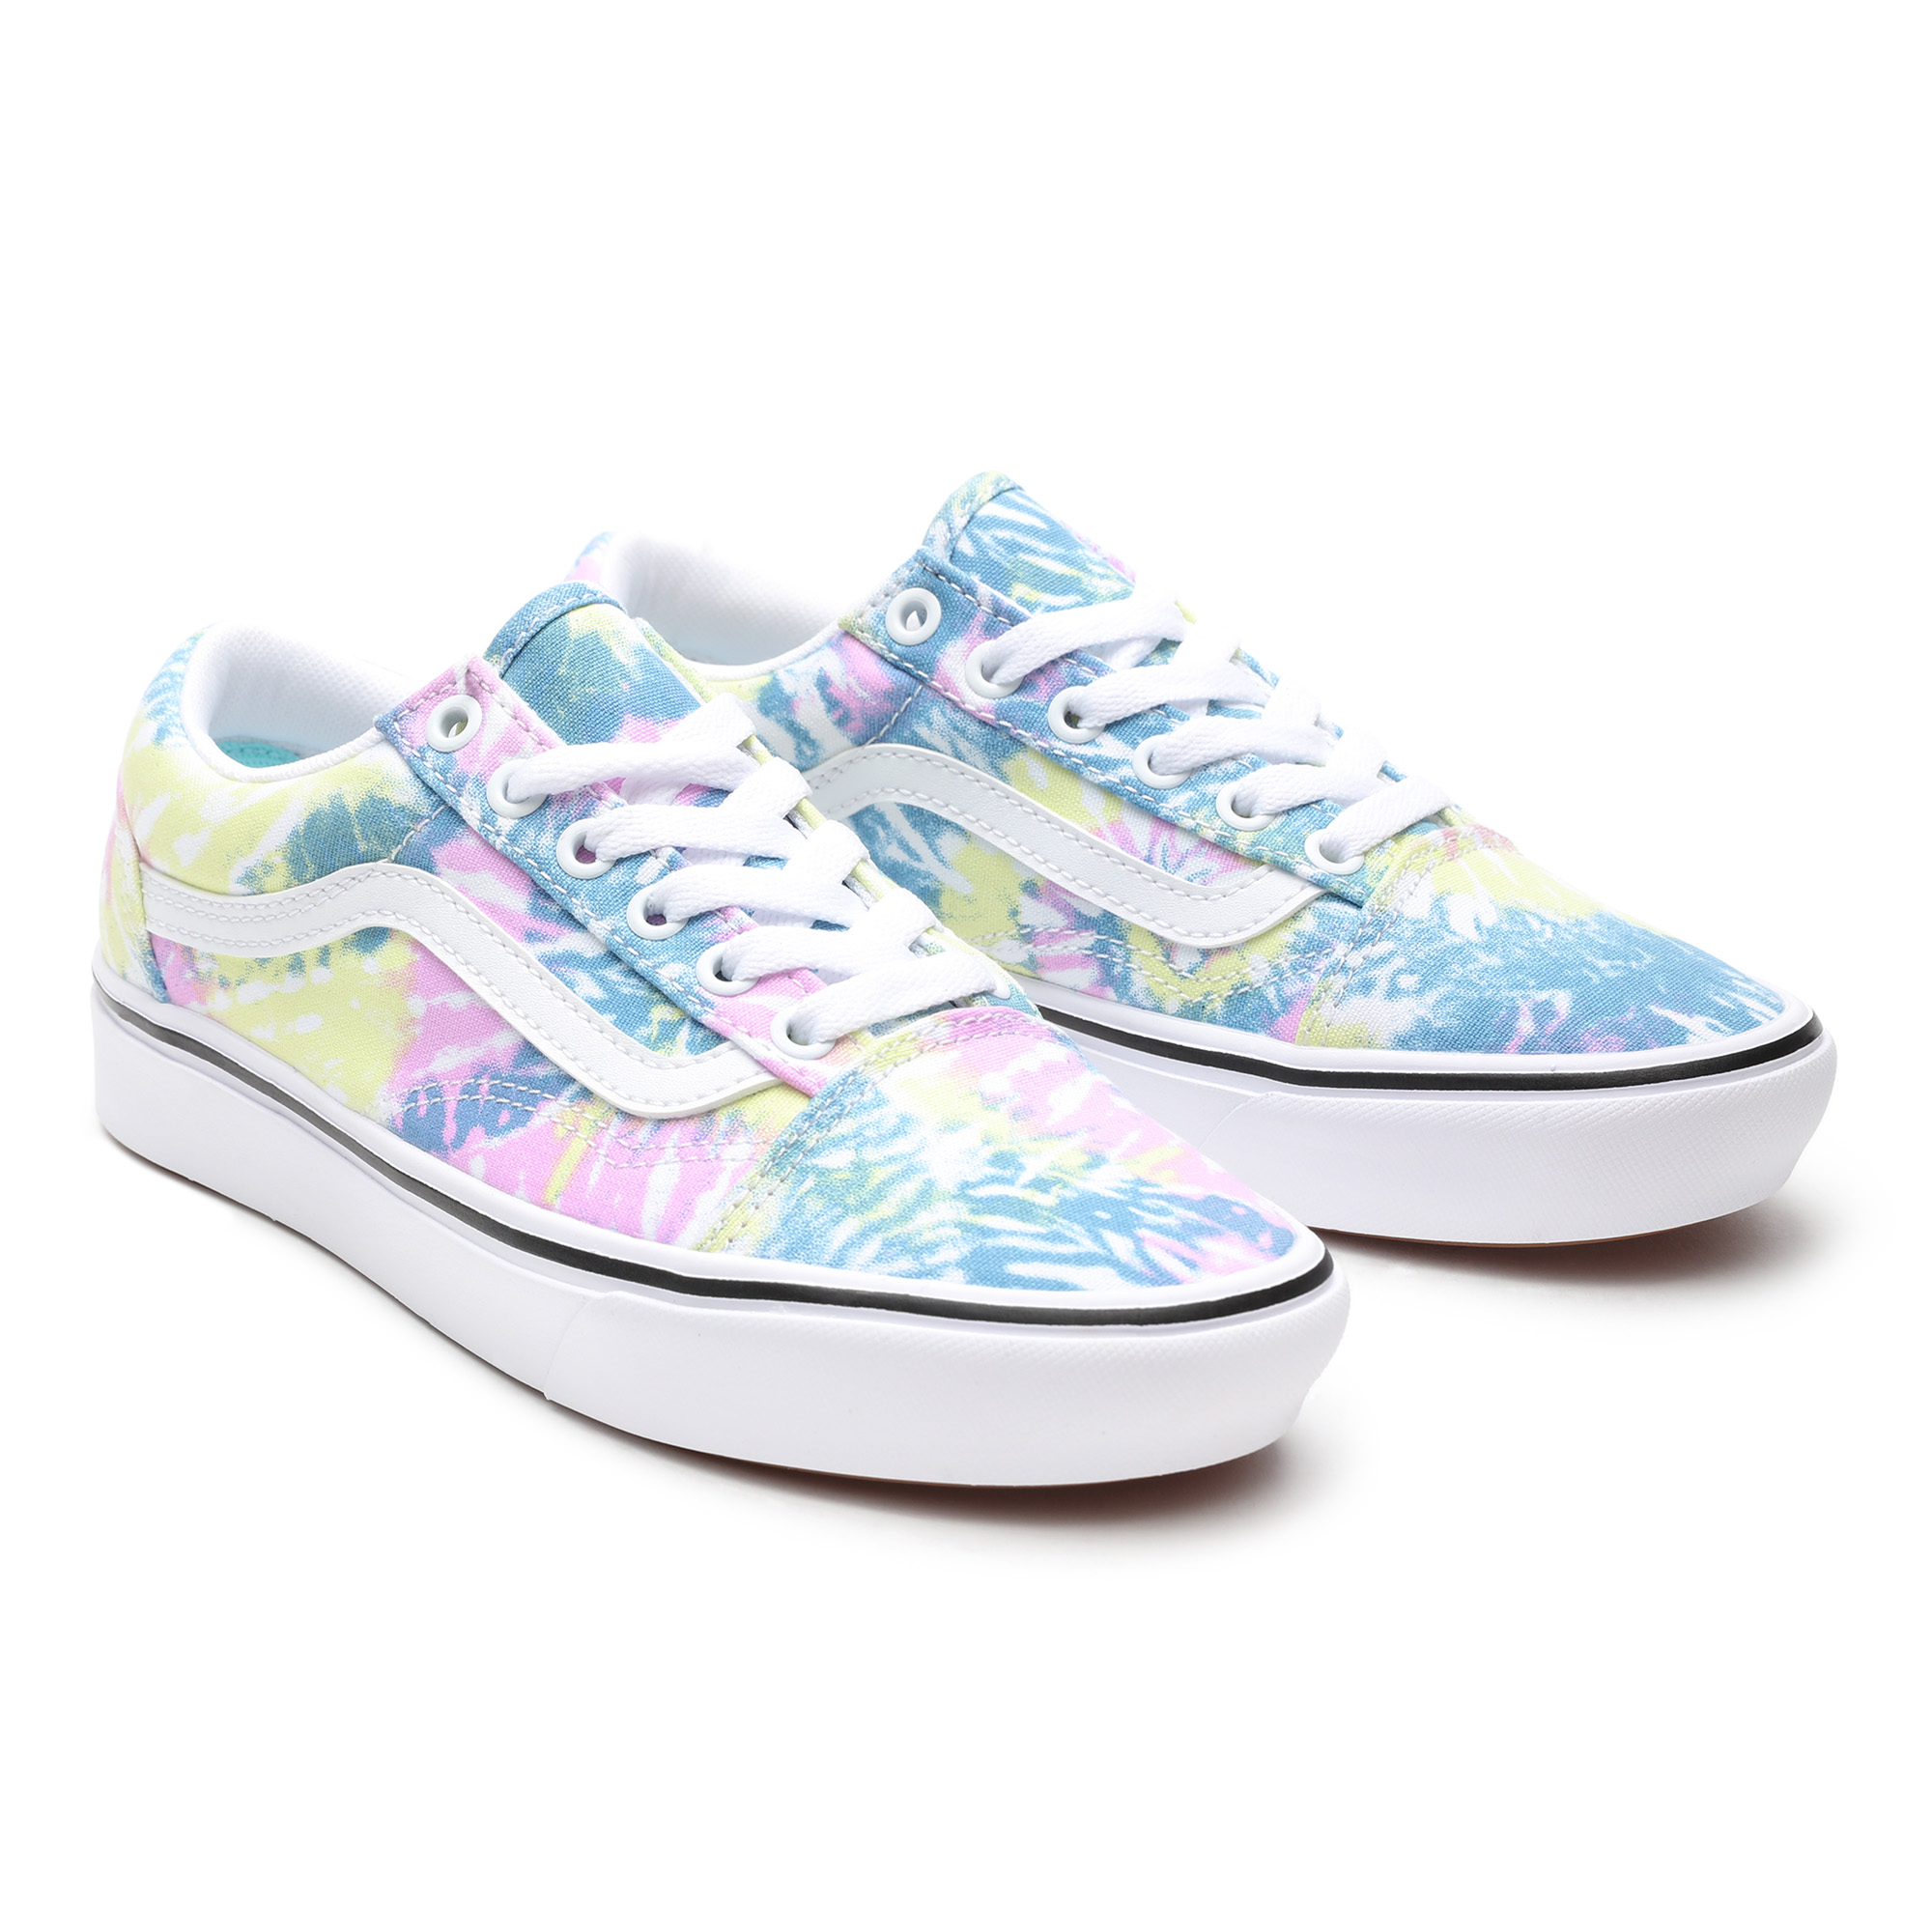 Кеды Tie Dye ComfyCush Old Skool